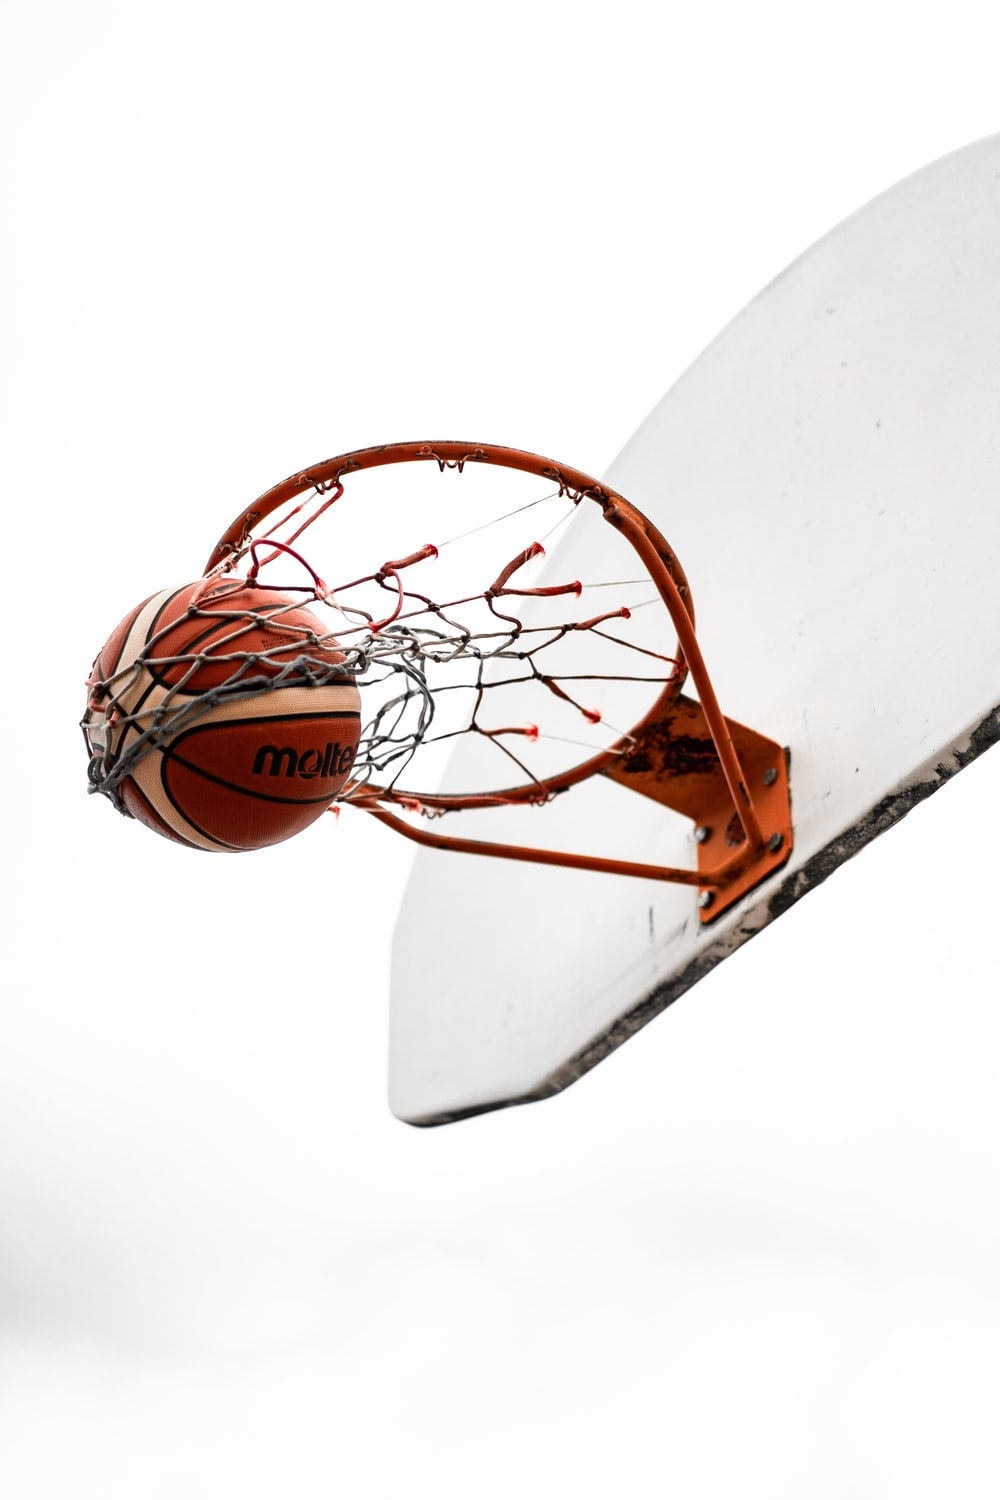 basketball hoop with white background